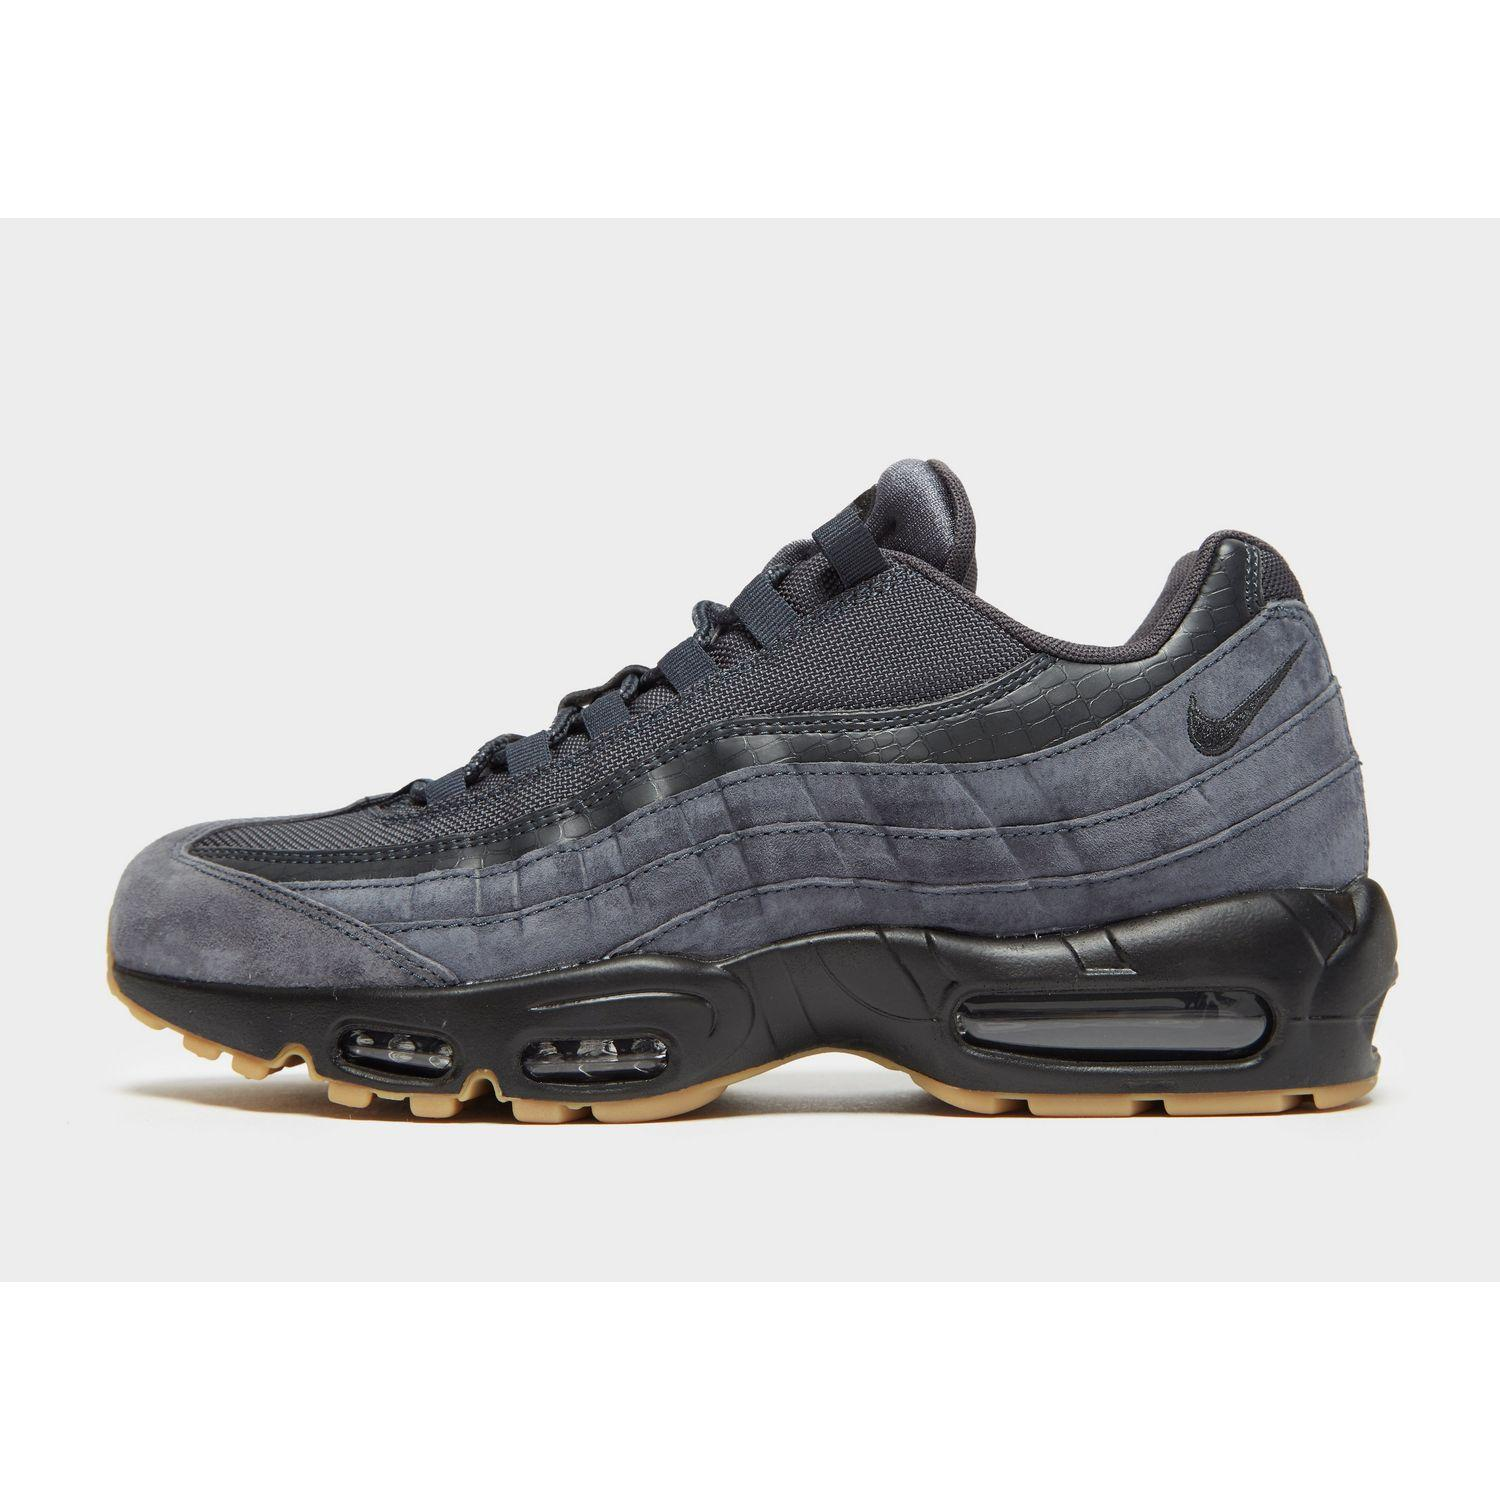 Nike Synthetic Air Max 95 Se in